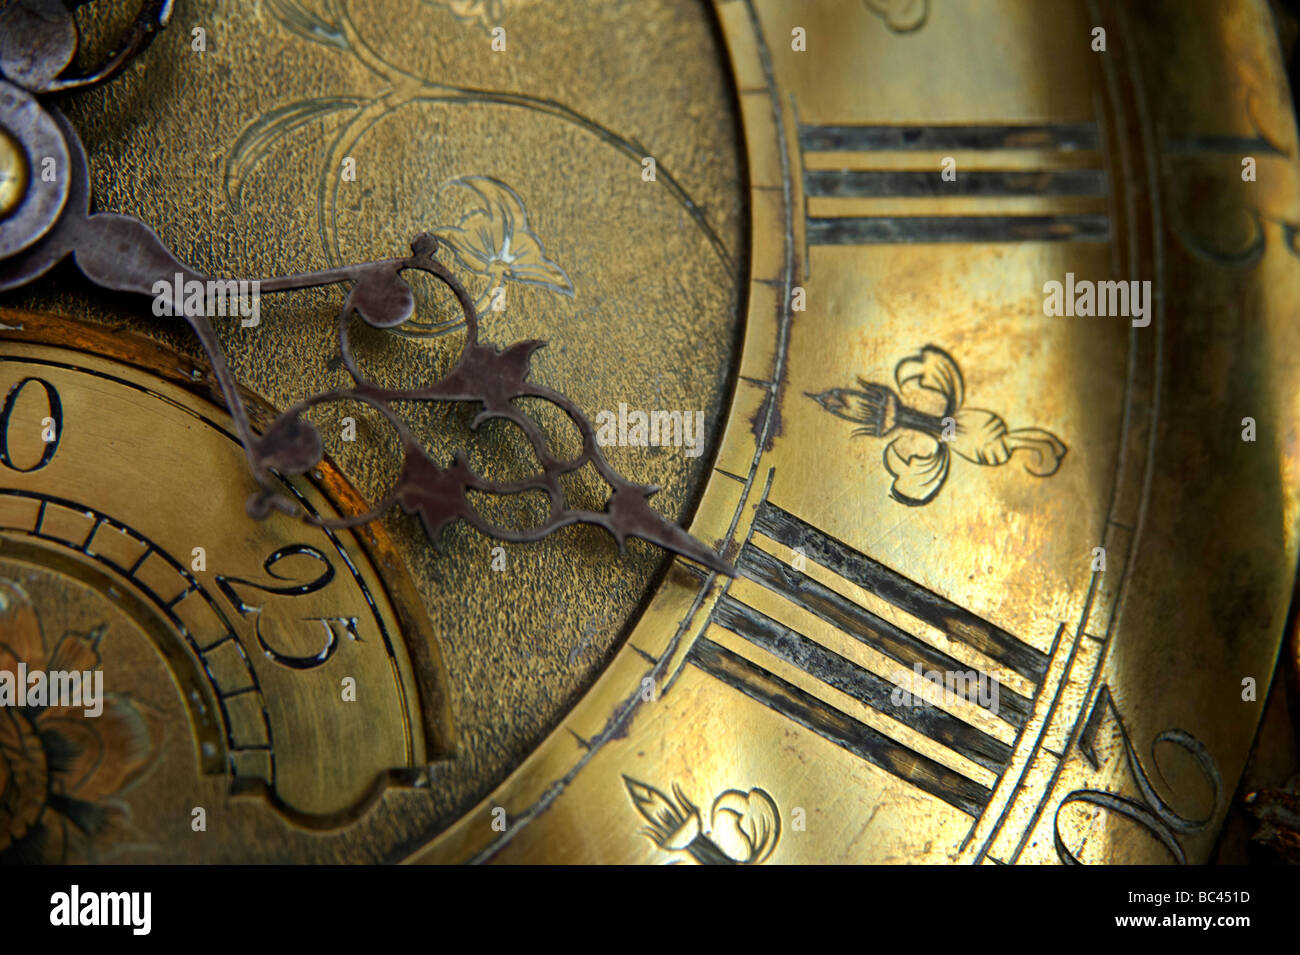 Antike Standuhr Gesicht, UK Stockbild